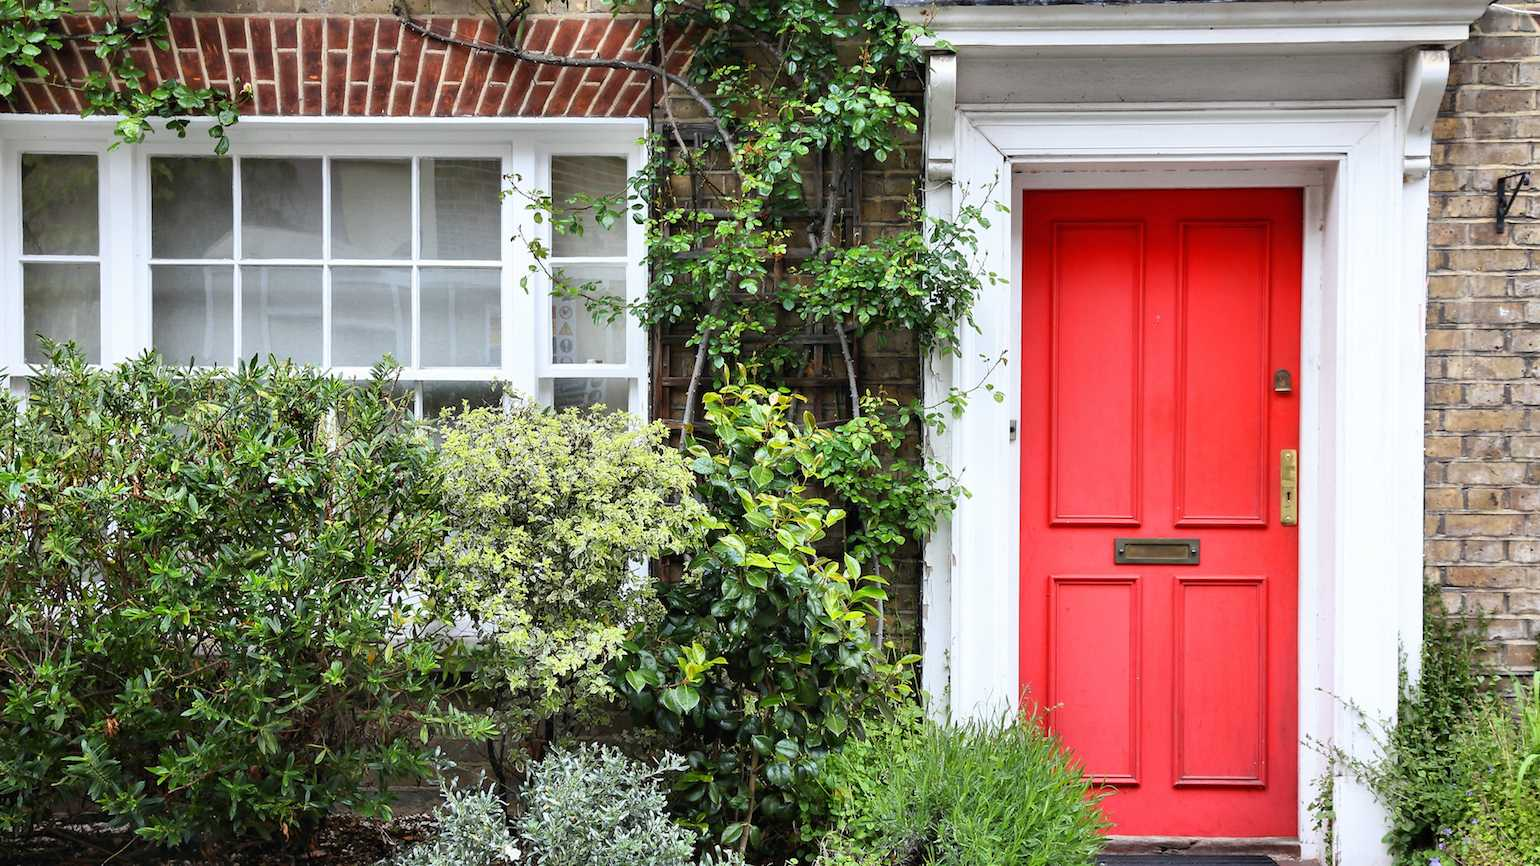 3 Easy, Inexpensive Ways to Spruce Up Your Home for Spring